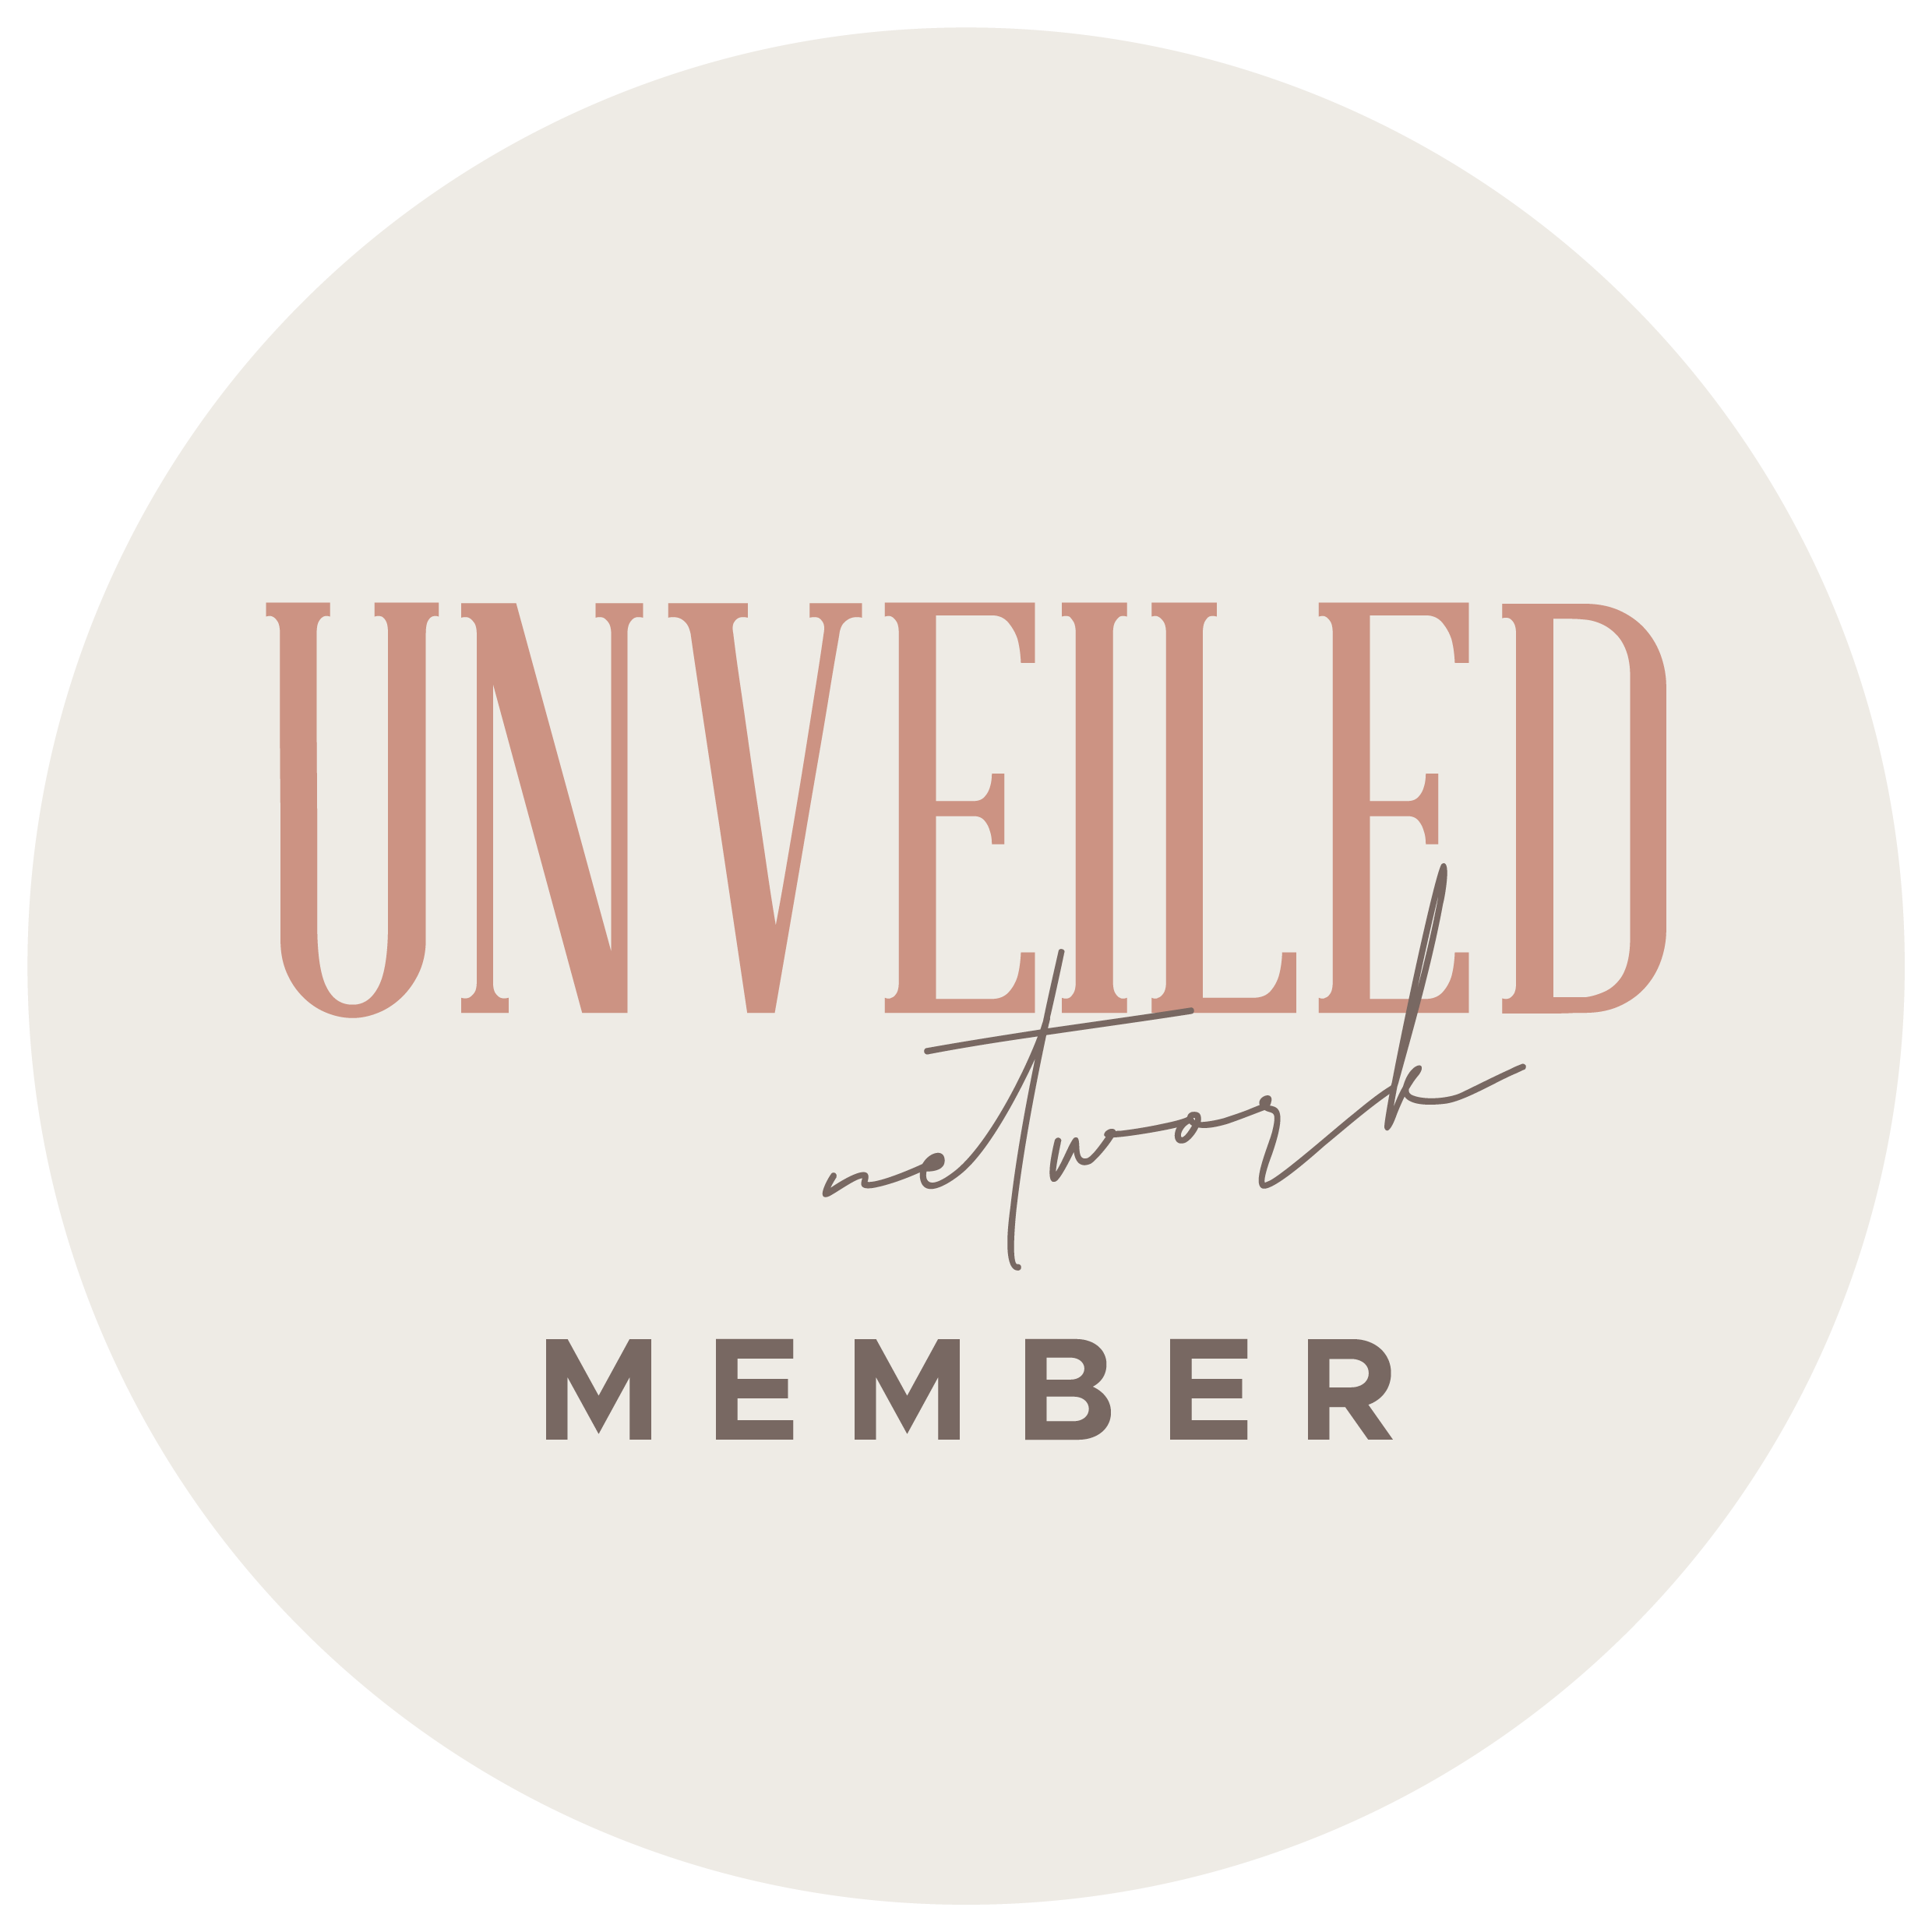 Member of the Unveiled Network elite wedding industry suppliers. Ellison Gray Bridal, is an exclusive bridal boutique in Durham. Serving Brides having weddings in Yorkshire, Durham, Northumberland, Newcastle, Sunderland and beyond!